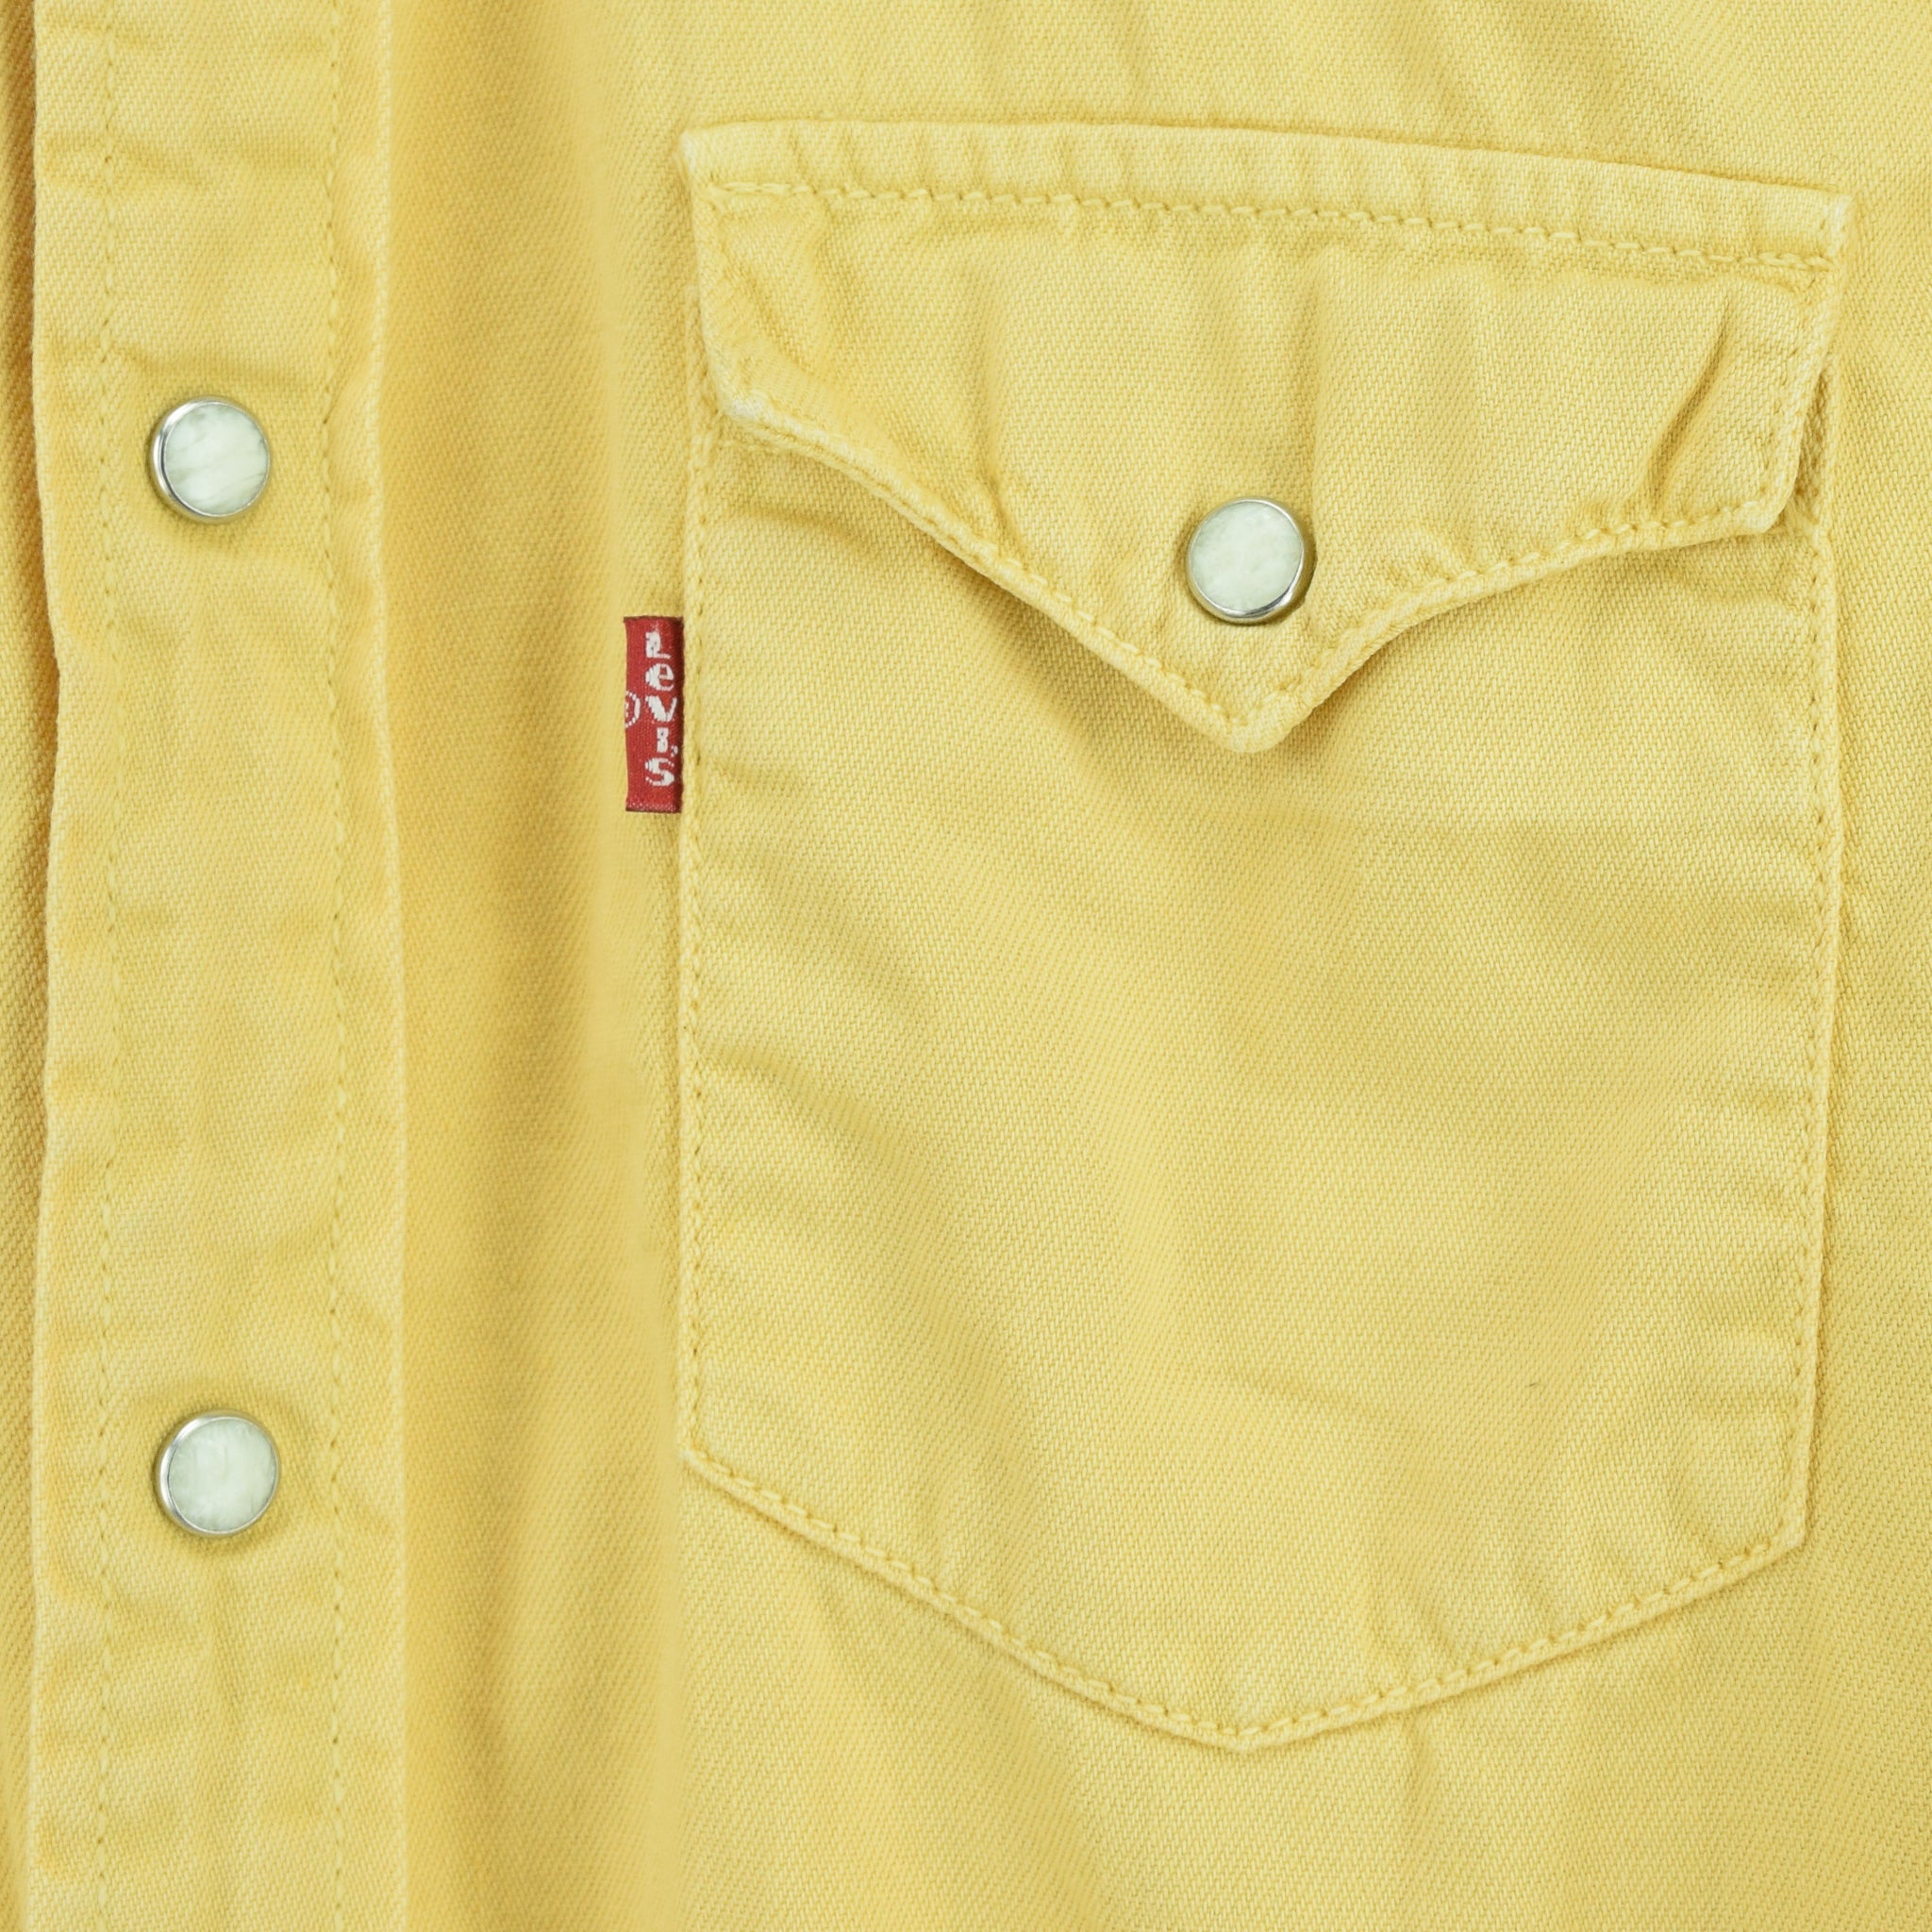 Vintage Levi Red Tab Washed Yellow Cotton Western Cowboy Shirt S chest pocket